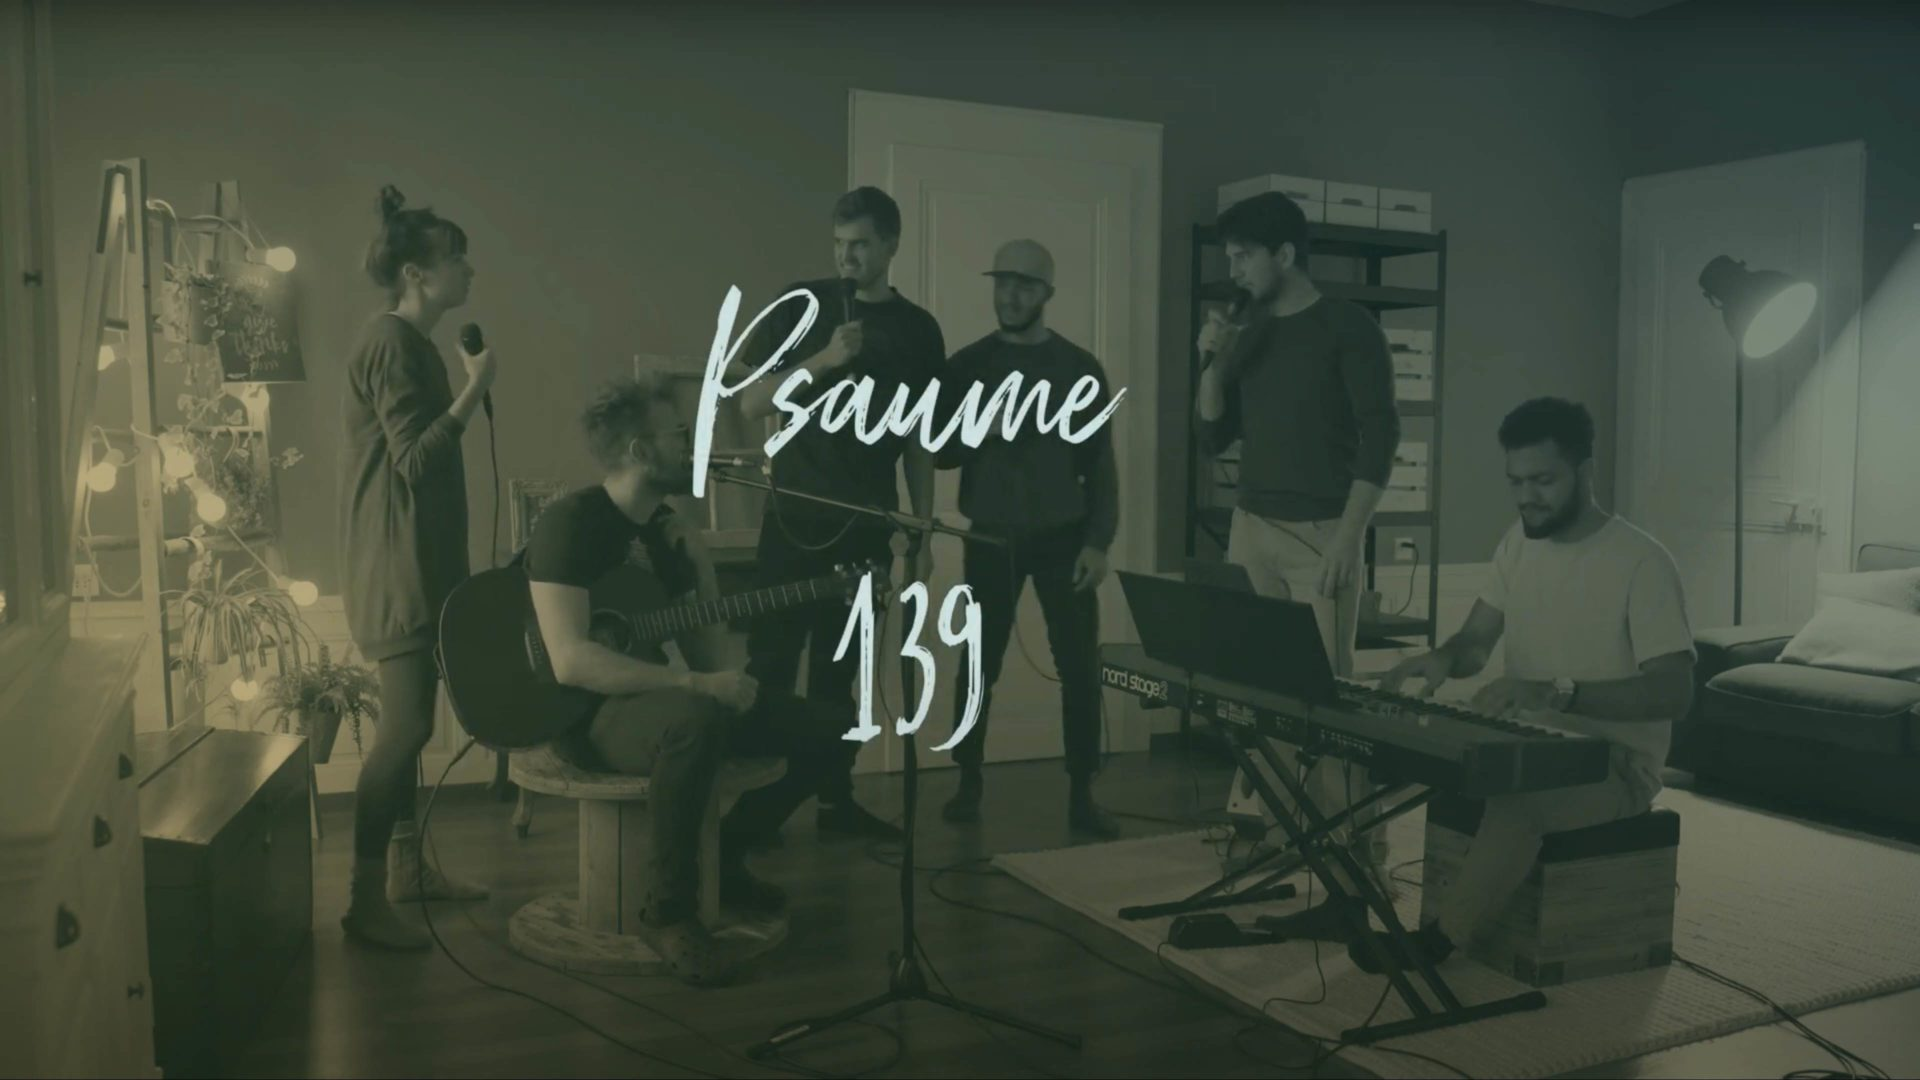 Folksas'on Psaume 139